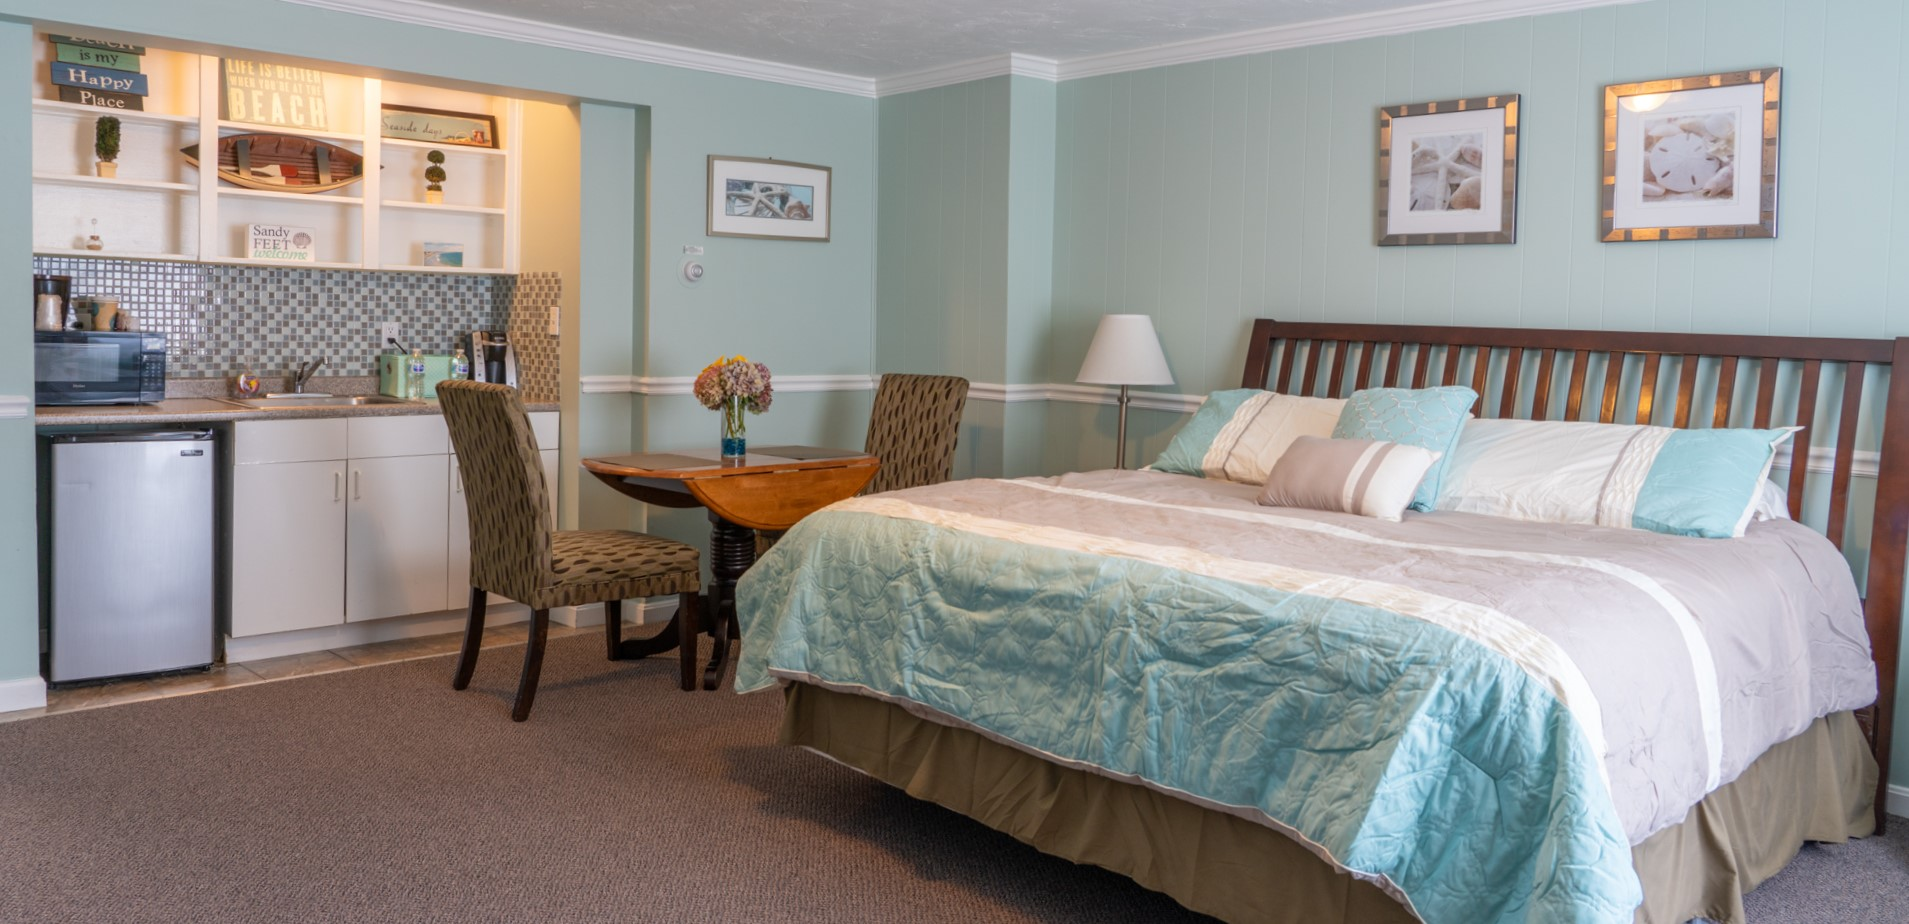 nantasket beach hotel - king beds